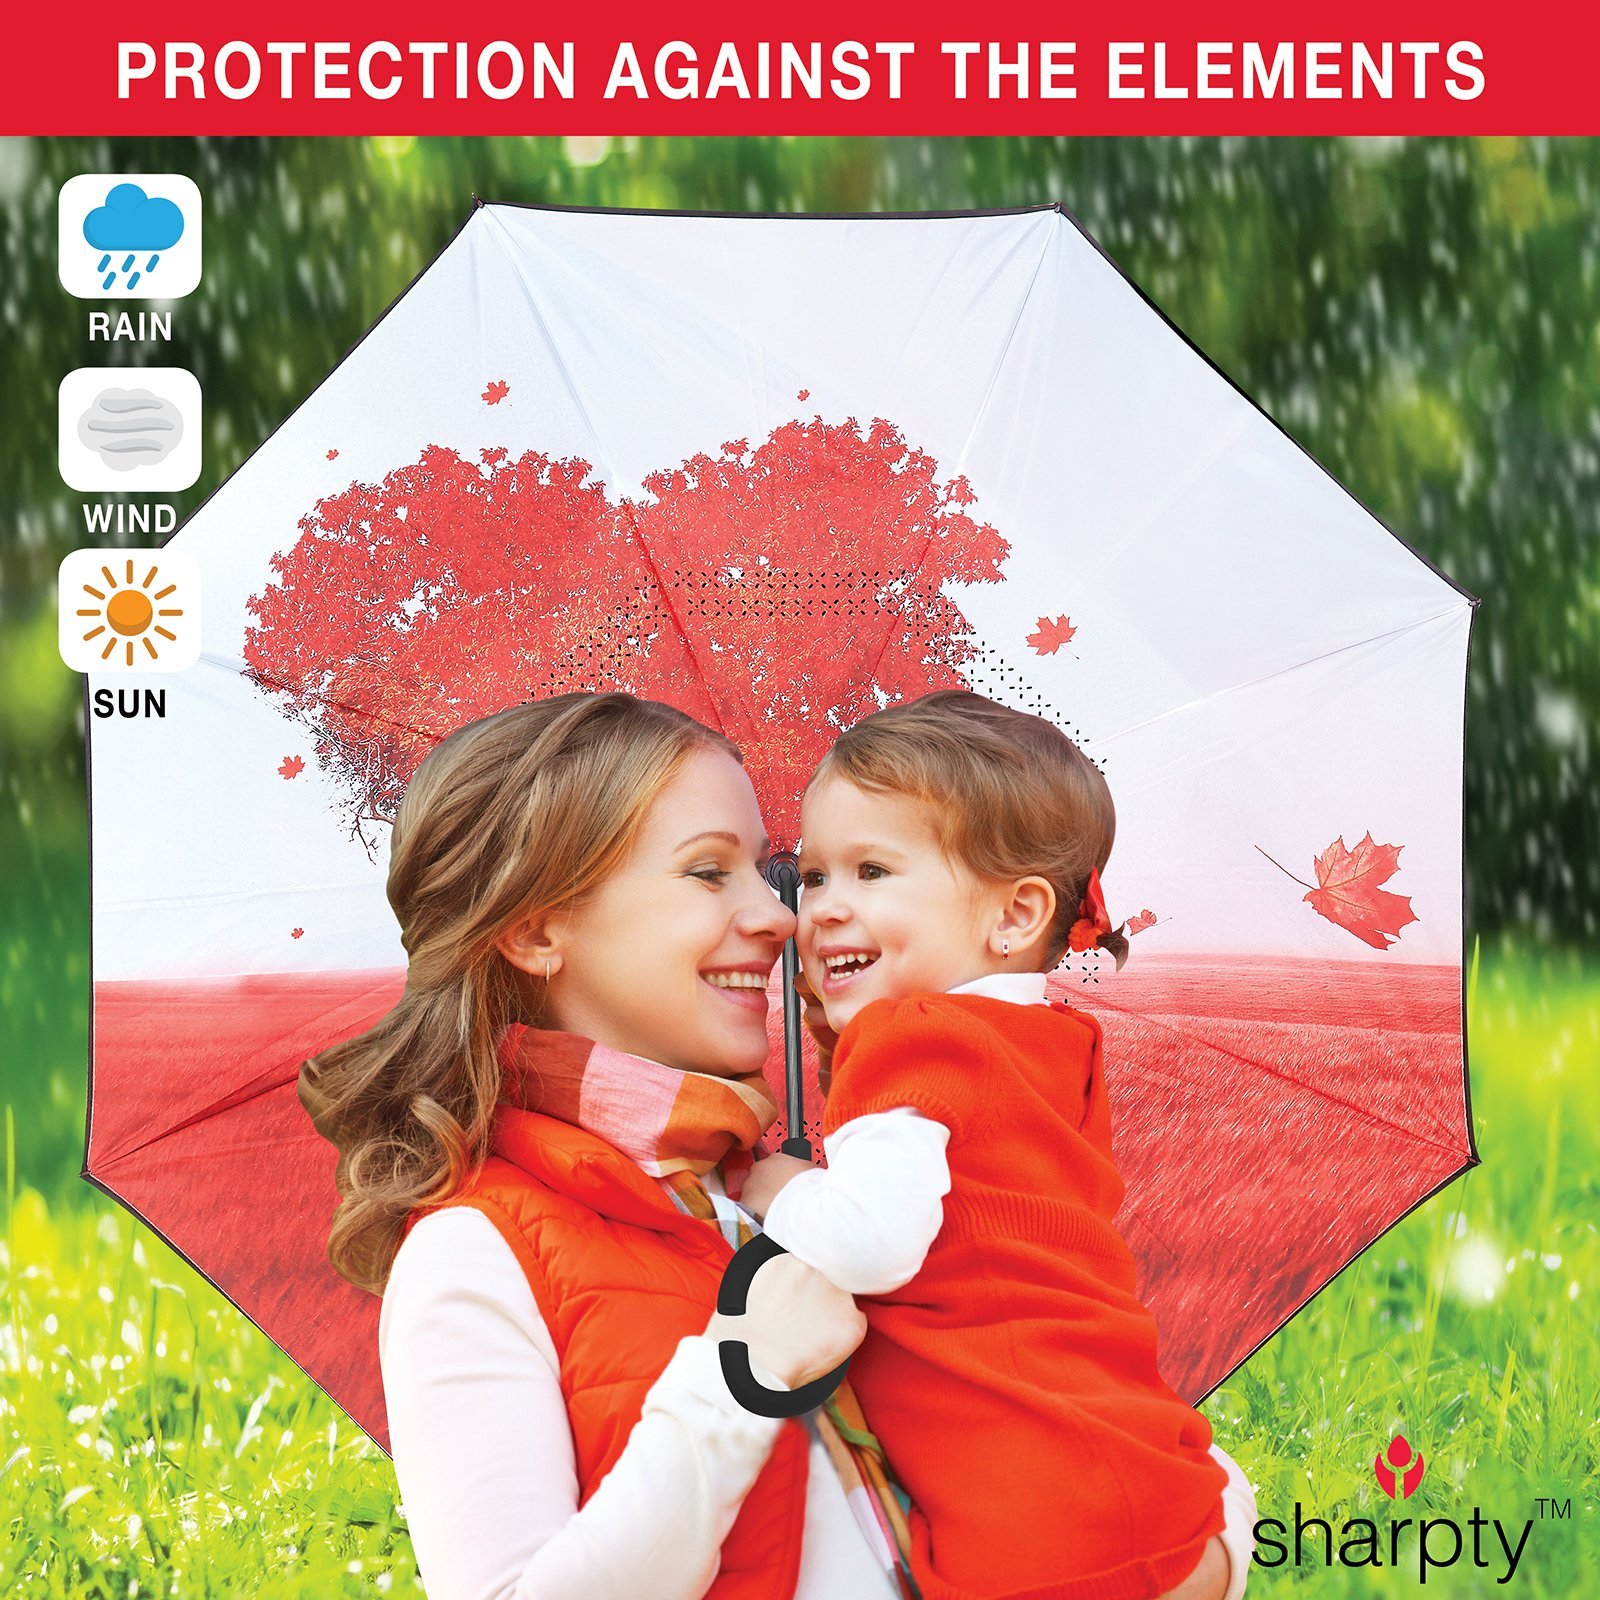 Sharpty Inverted Umbrella, Umbrella Windproof, Reverse Umbrella, Umbrellas for Women with UV Protection, Upside Down Umbrella With C-Shaped Handle (Love Tree) by Sharpty (Image #6)